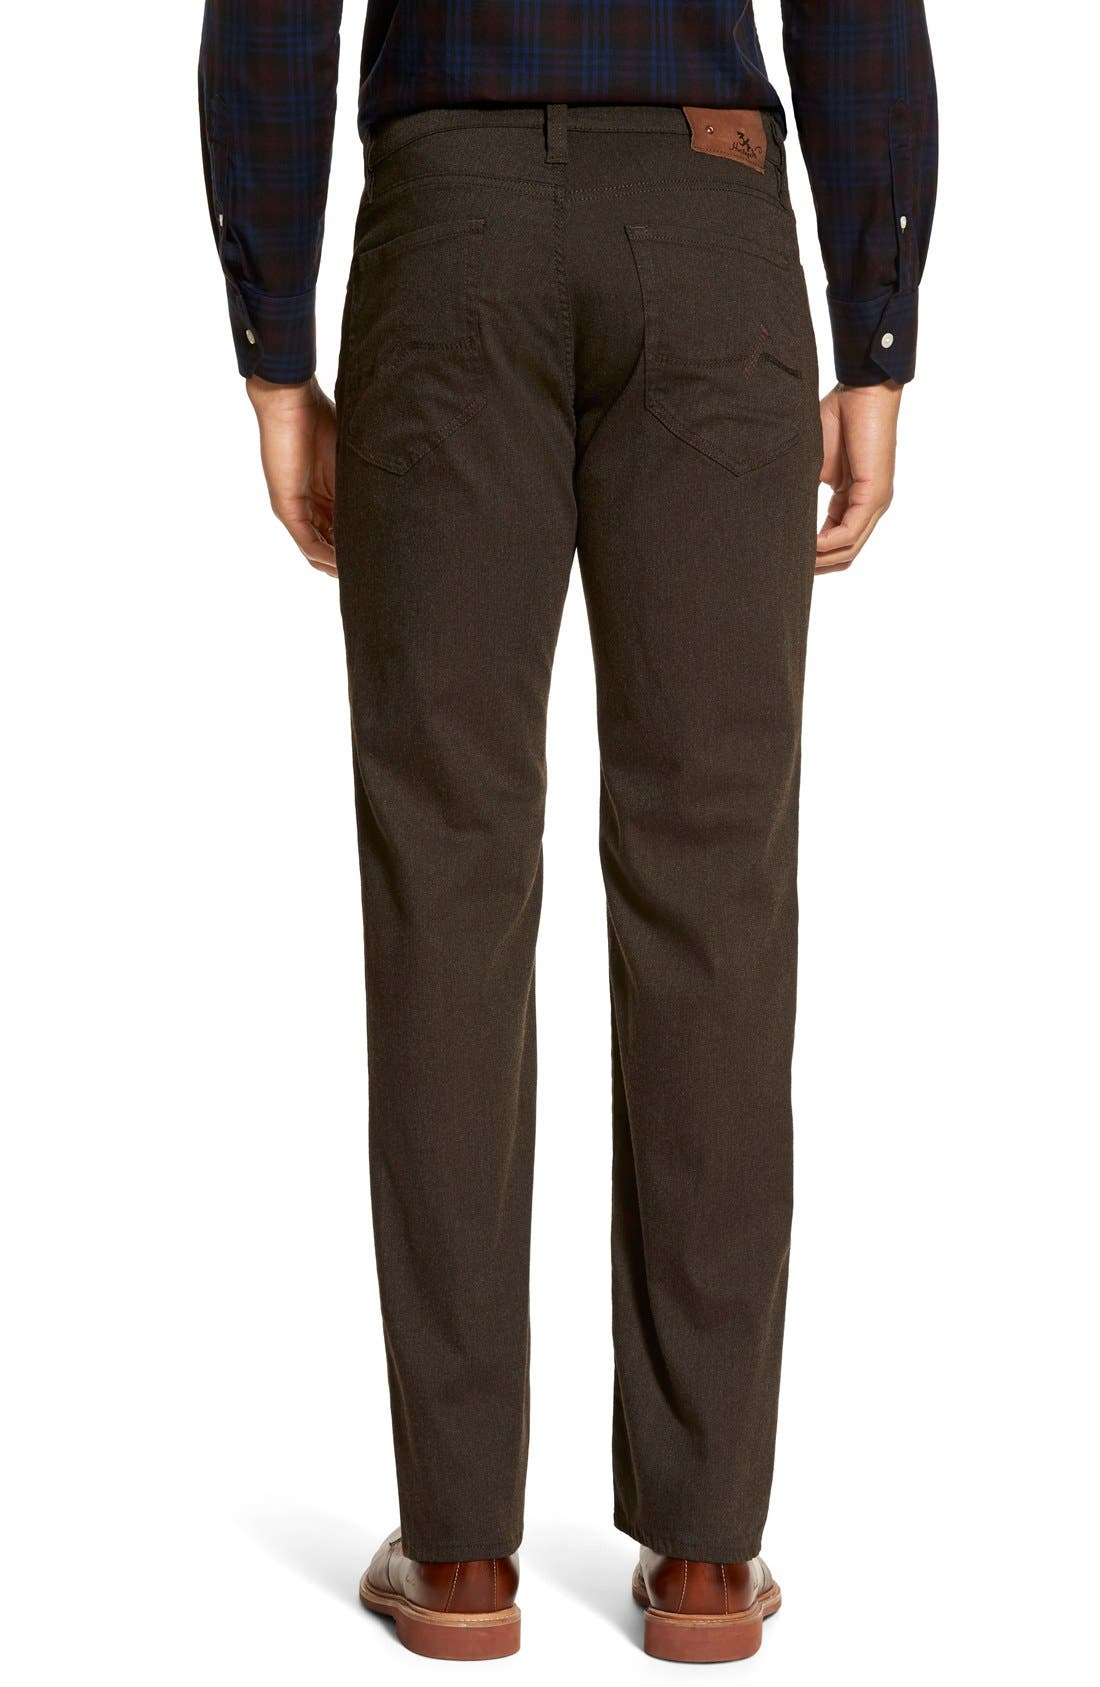 'Charisma' Relaxed Fit Jeans,                             Alternate thumbnail 6, color,                             200